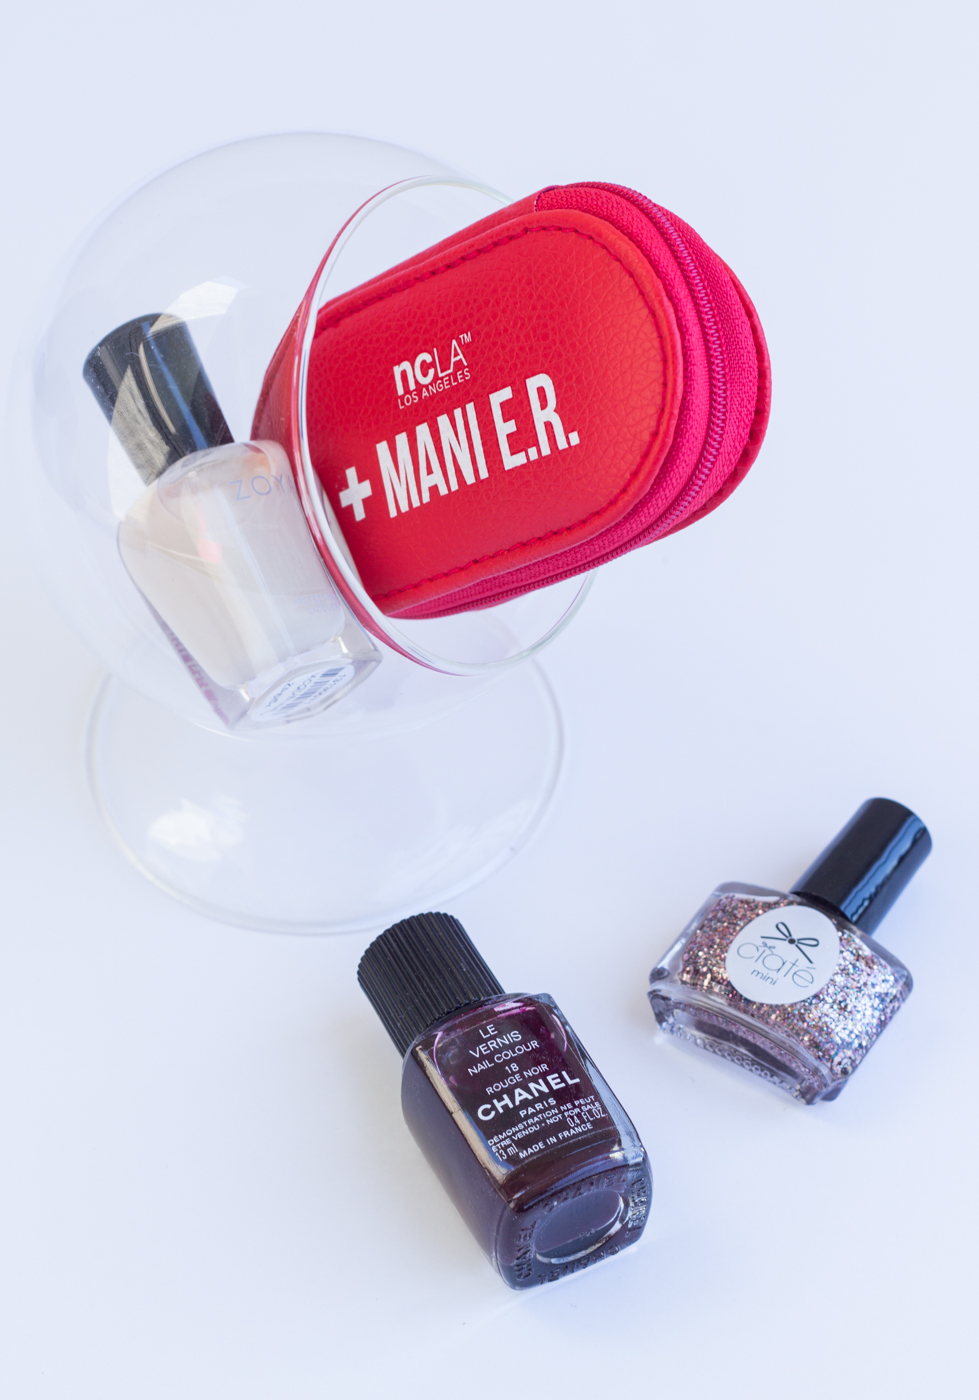 NCLA Mani-ER Tool Kit | The Chic Diary